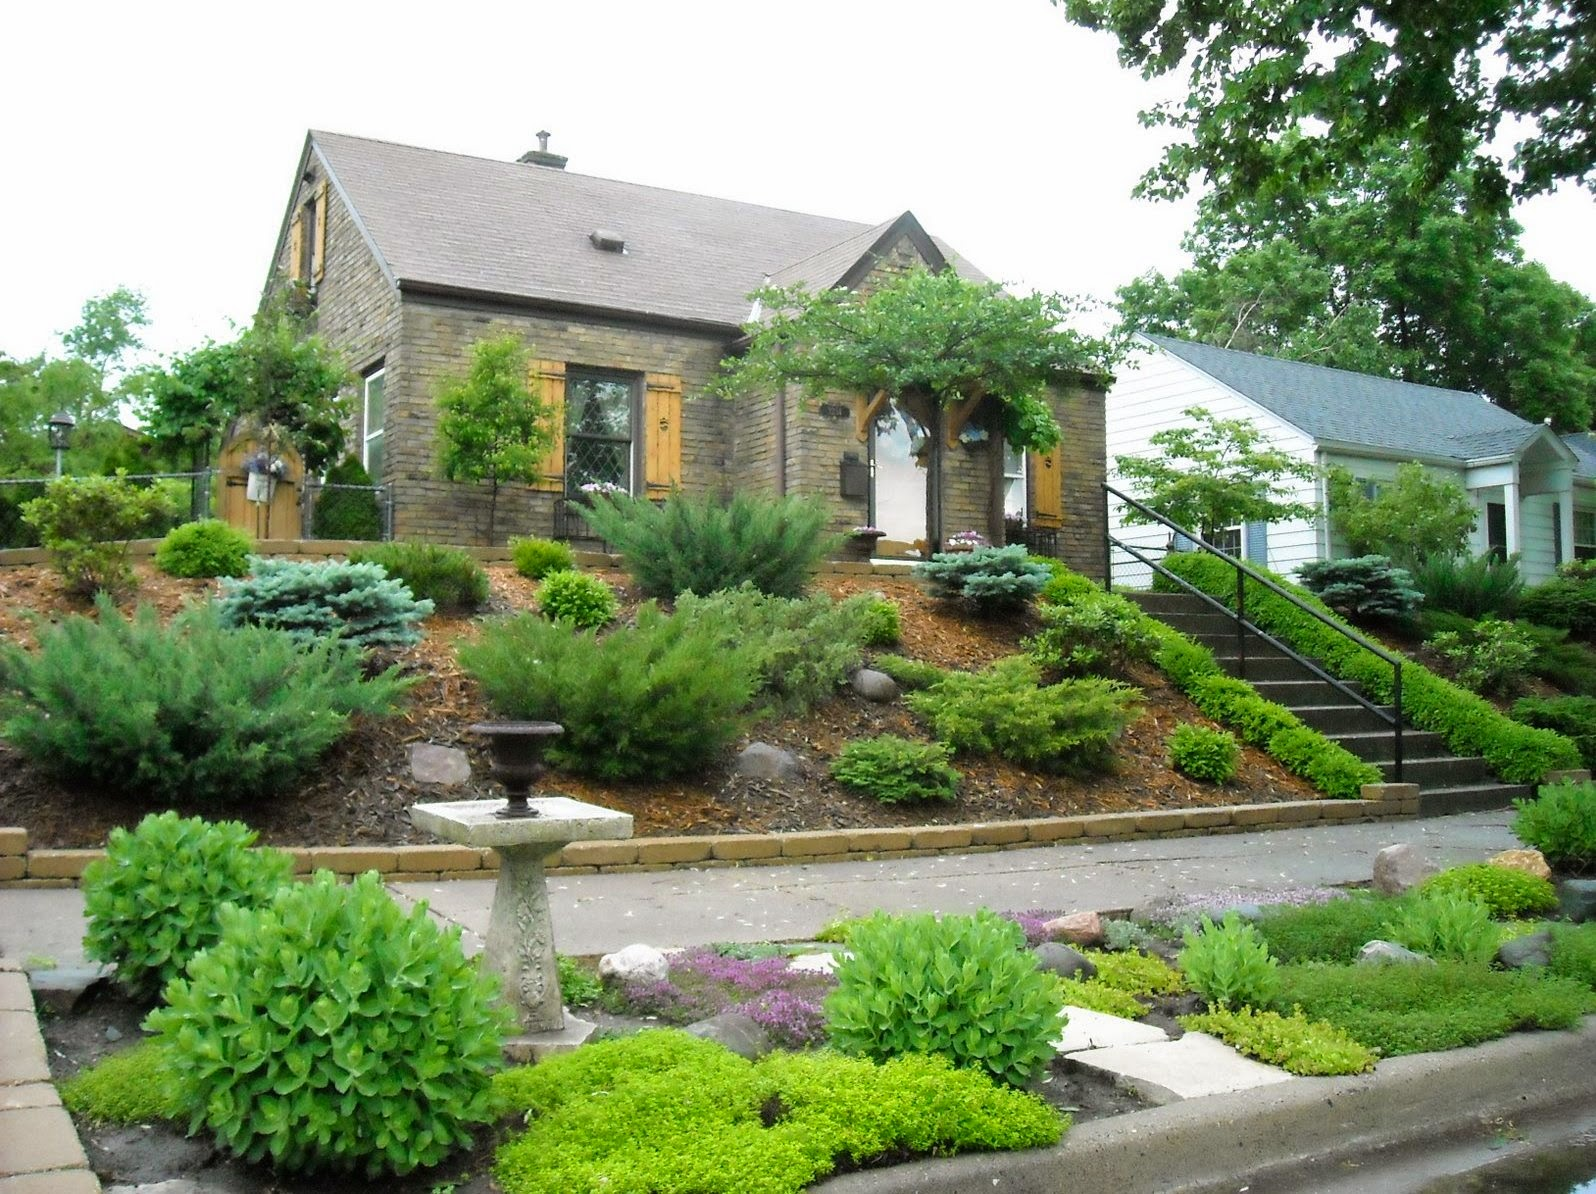 Landscaping Ideas For Front Of House Smart Home Designs